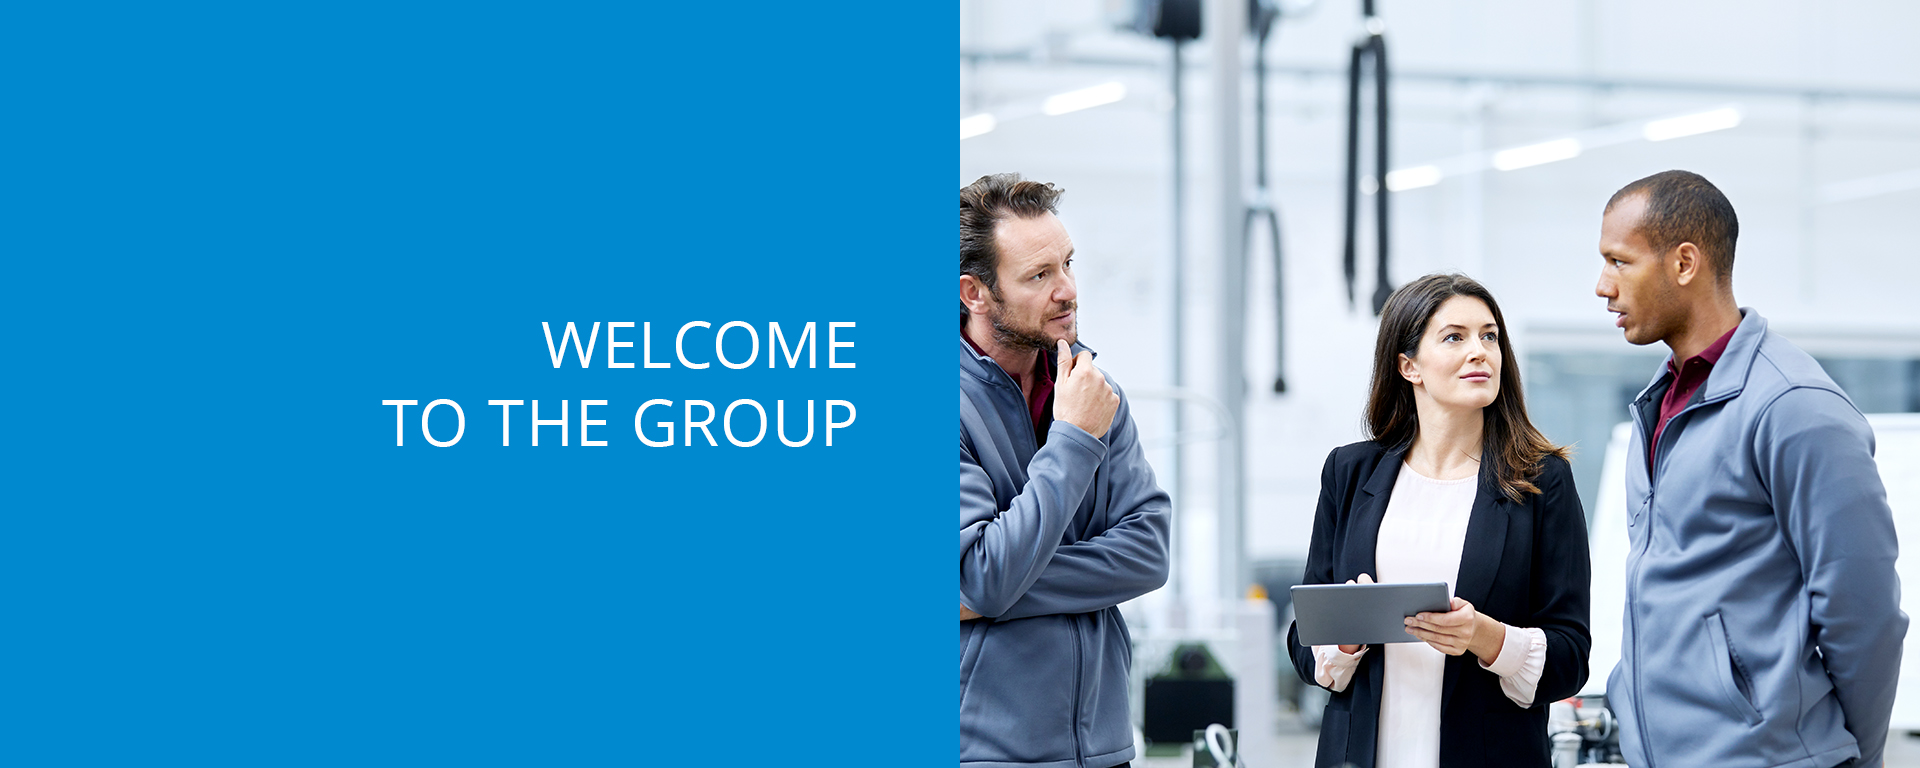 Your Group, your vision - Your Career at IRS Group